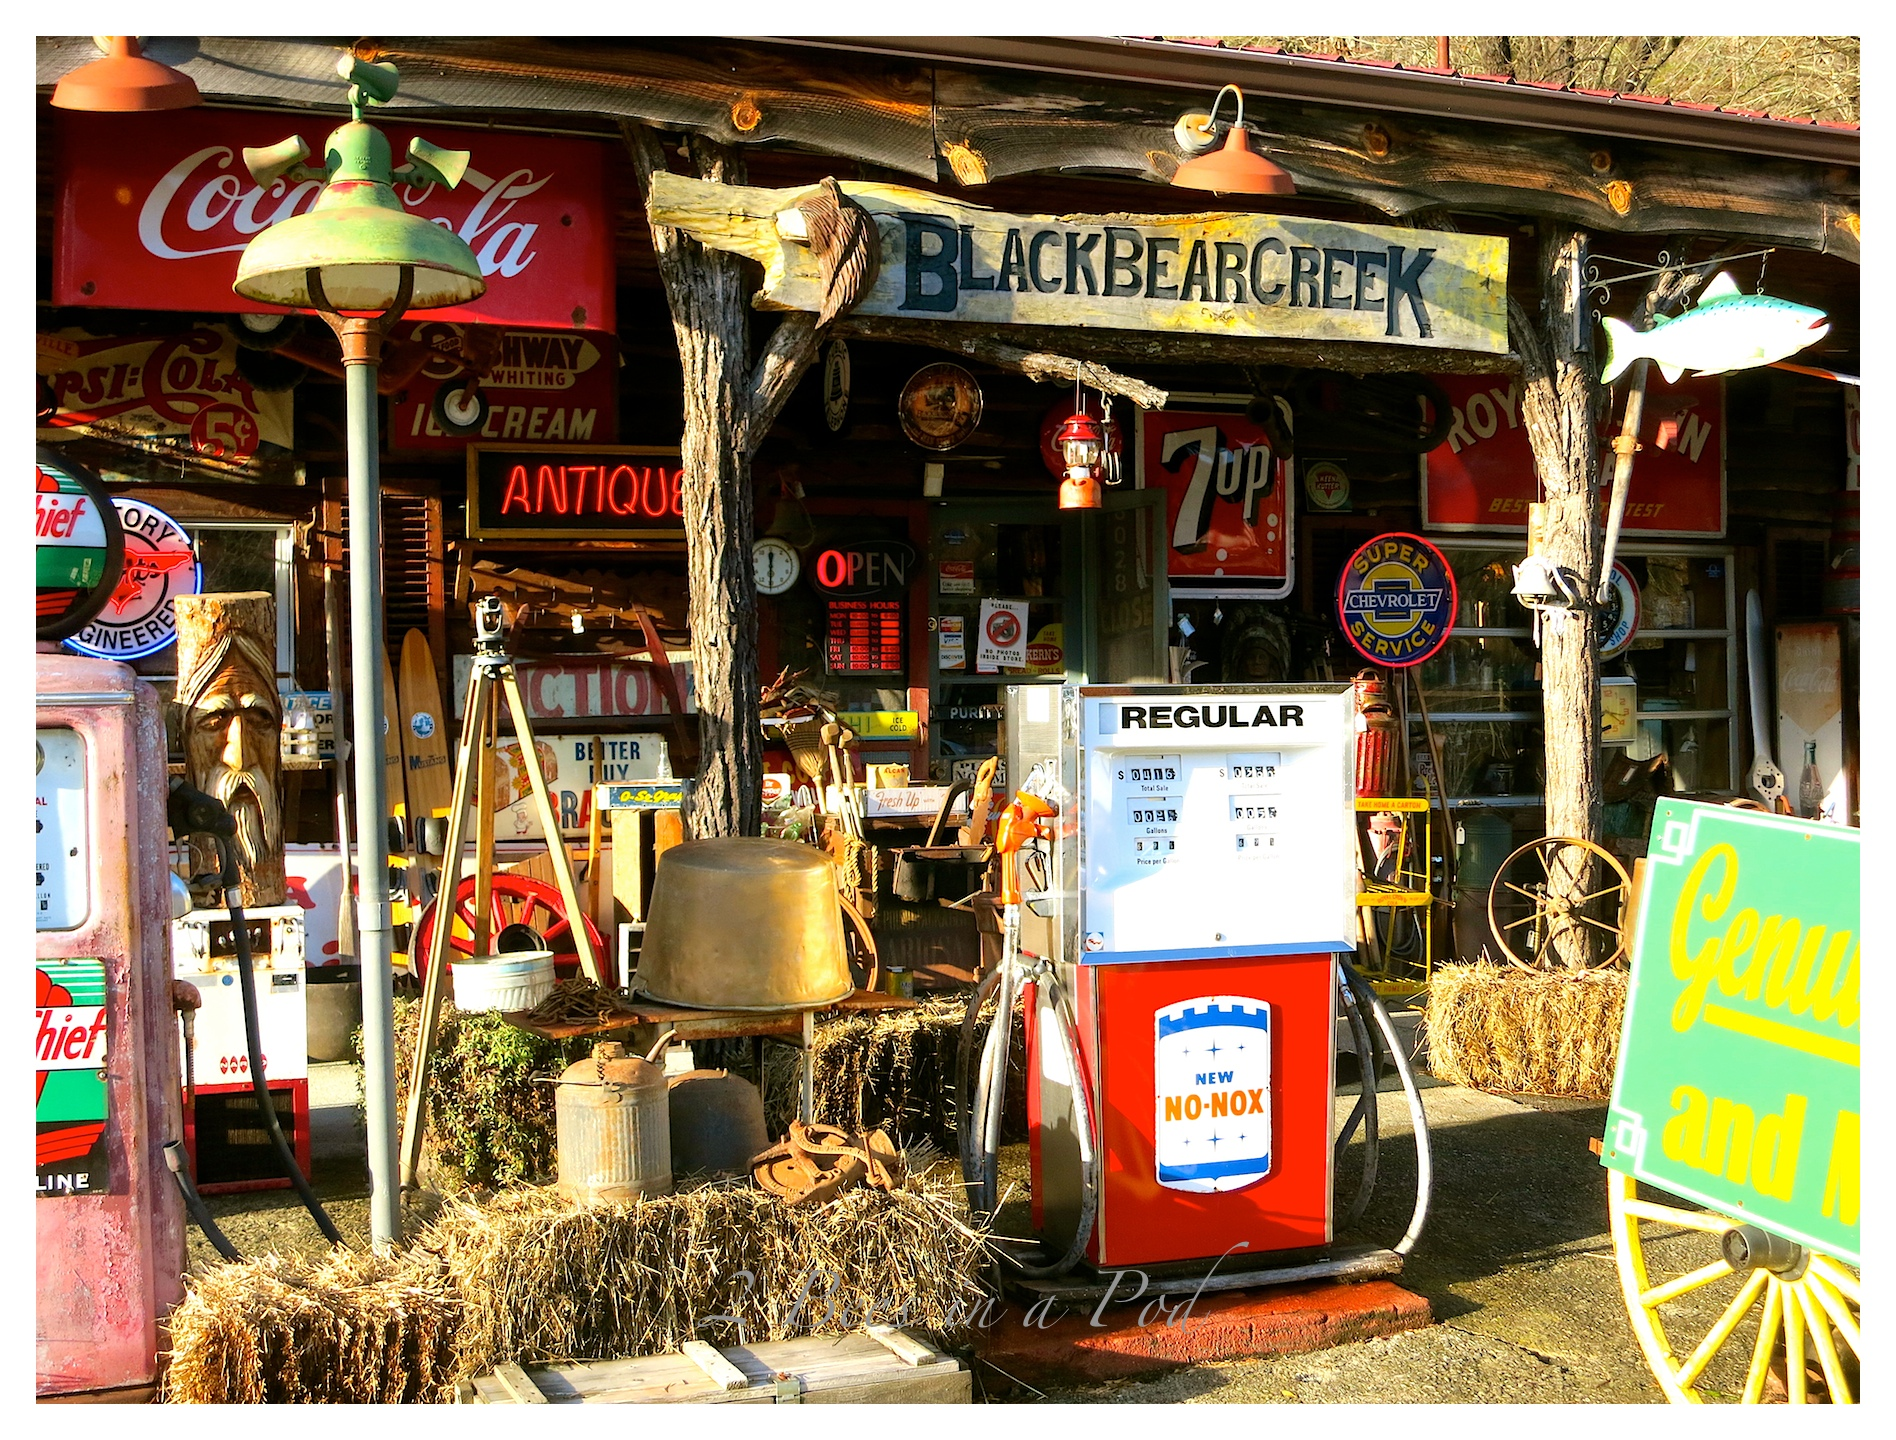 Wonderful antiques and vintage items at Black Bear Creek Antiques in Clayton, Georgia